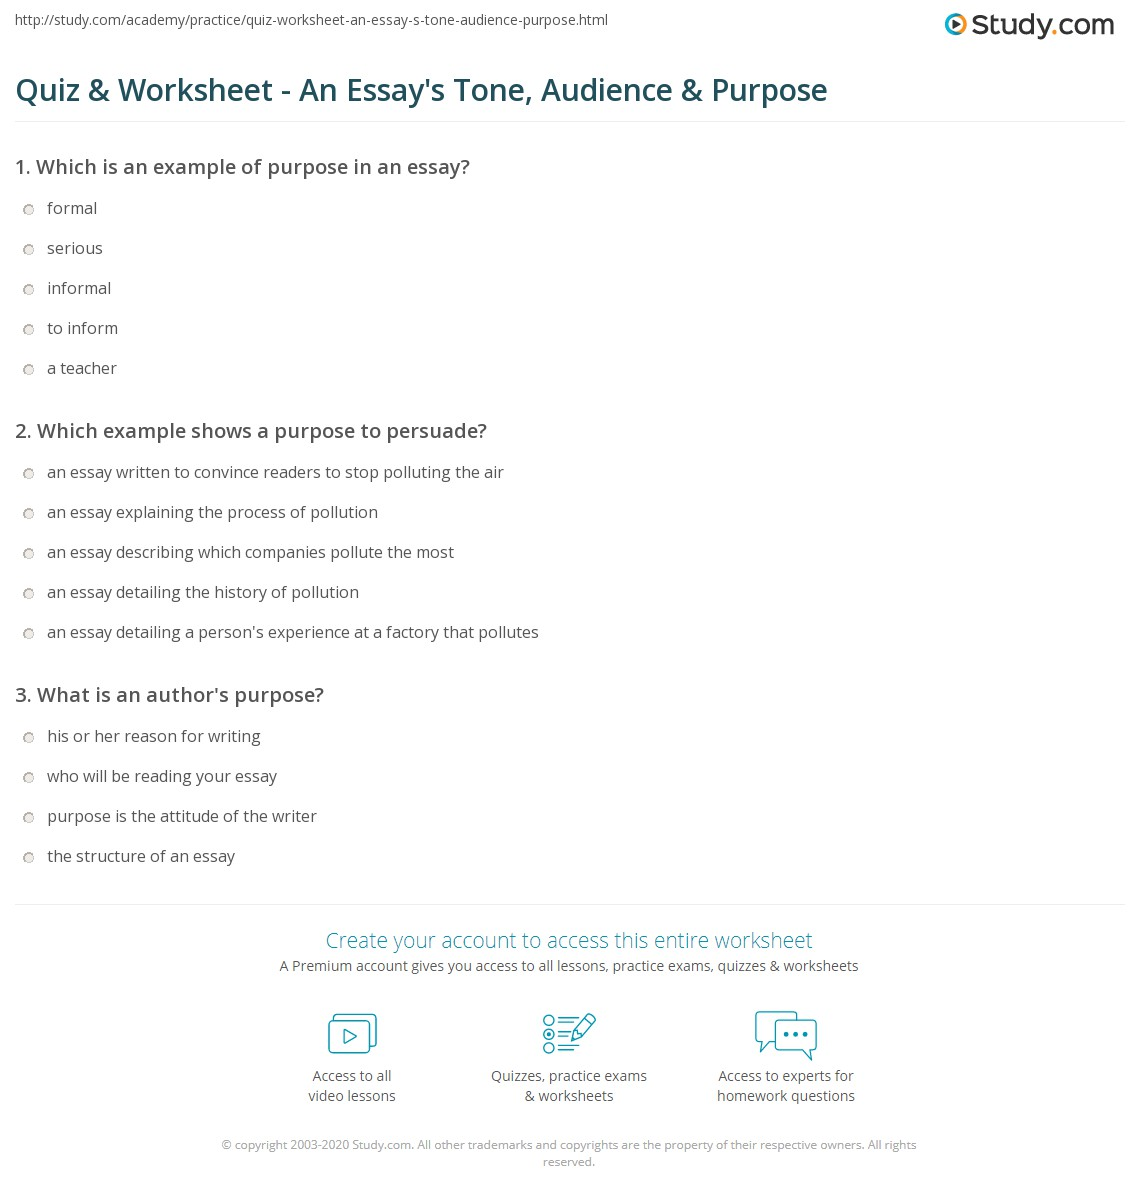 an essay quiz worksheet an essay s tone audience purpose com how  quiz worksheet an essay s tone audience purpose com print tone audience purpose in essays worksheet